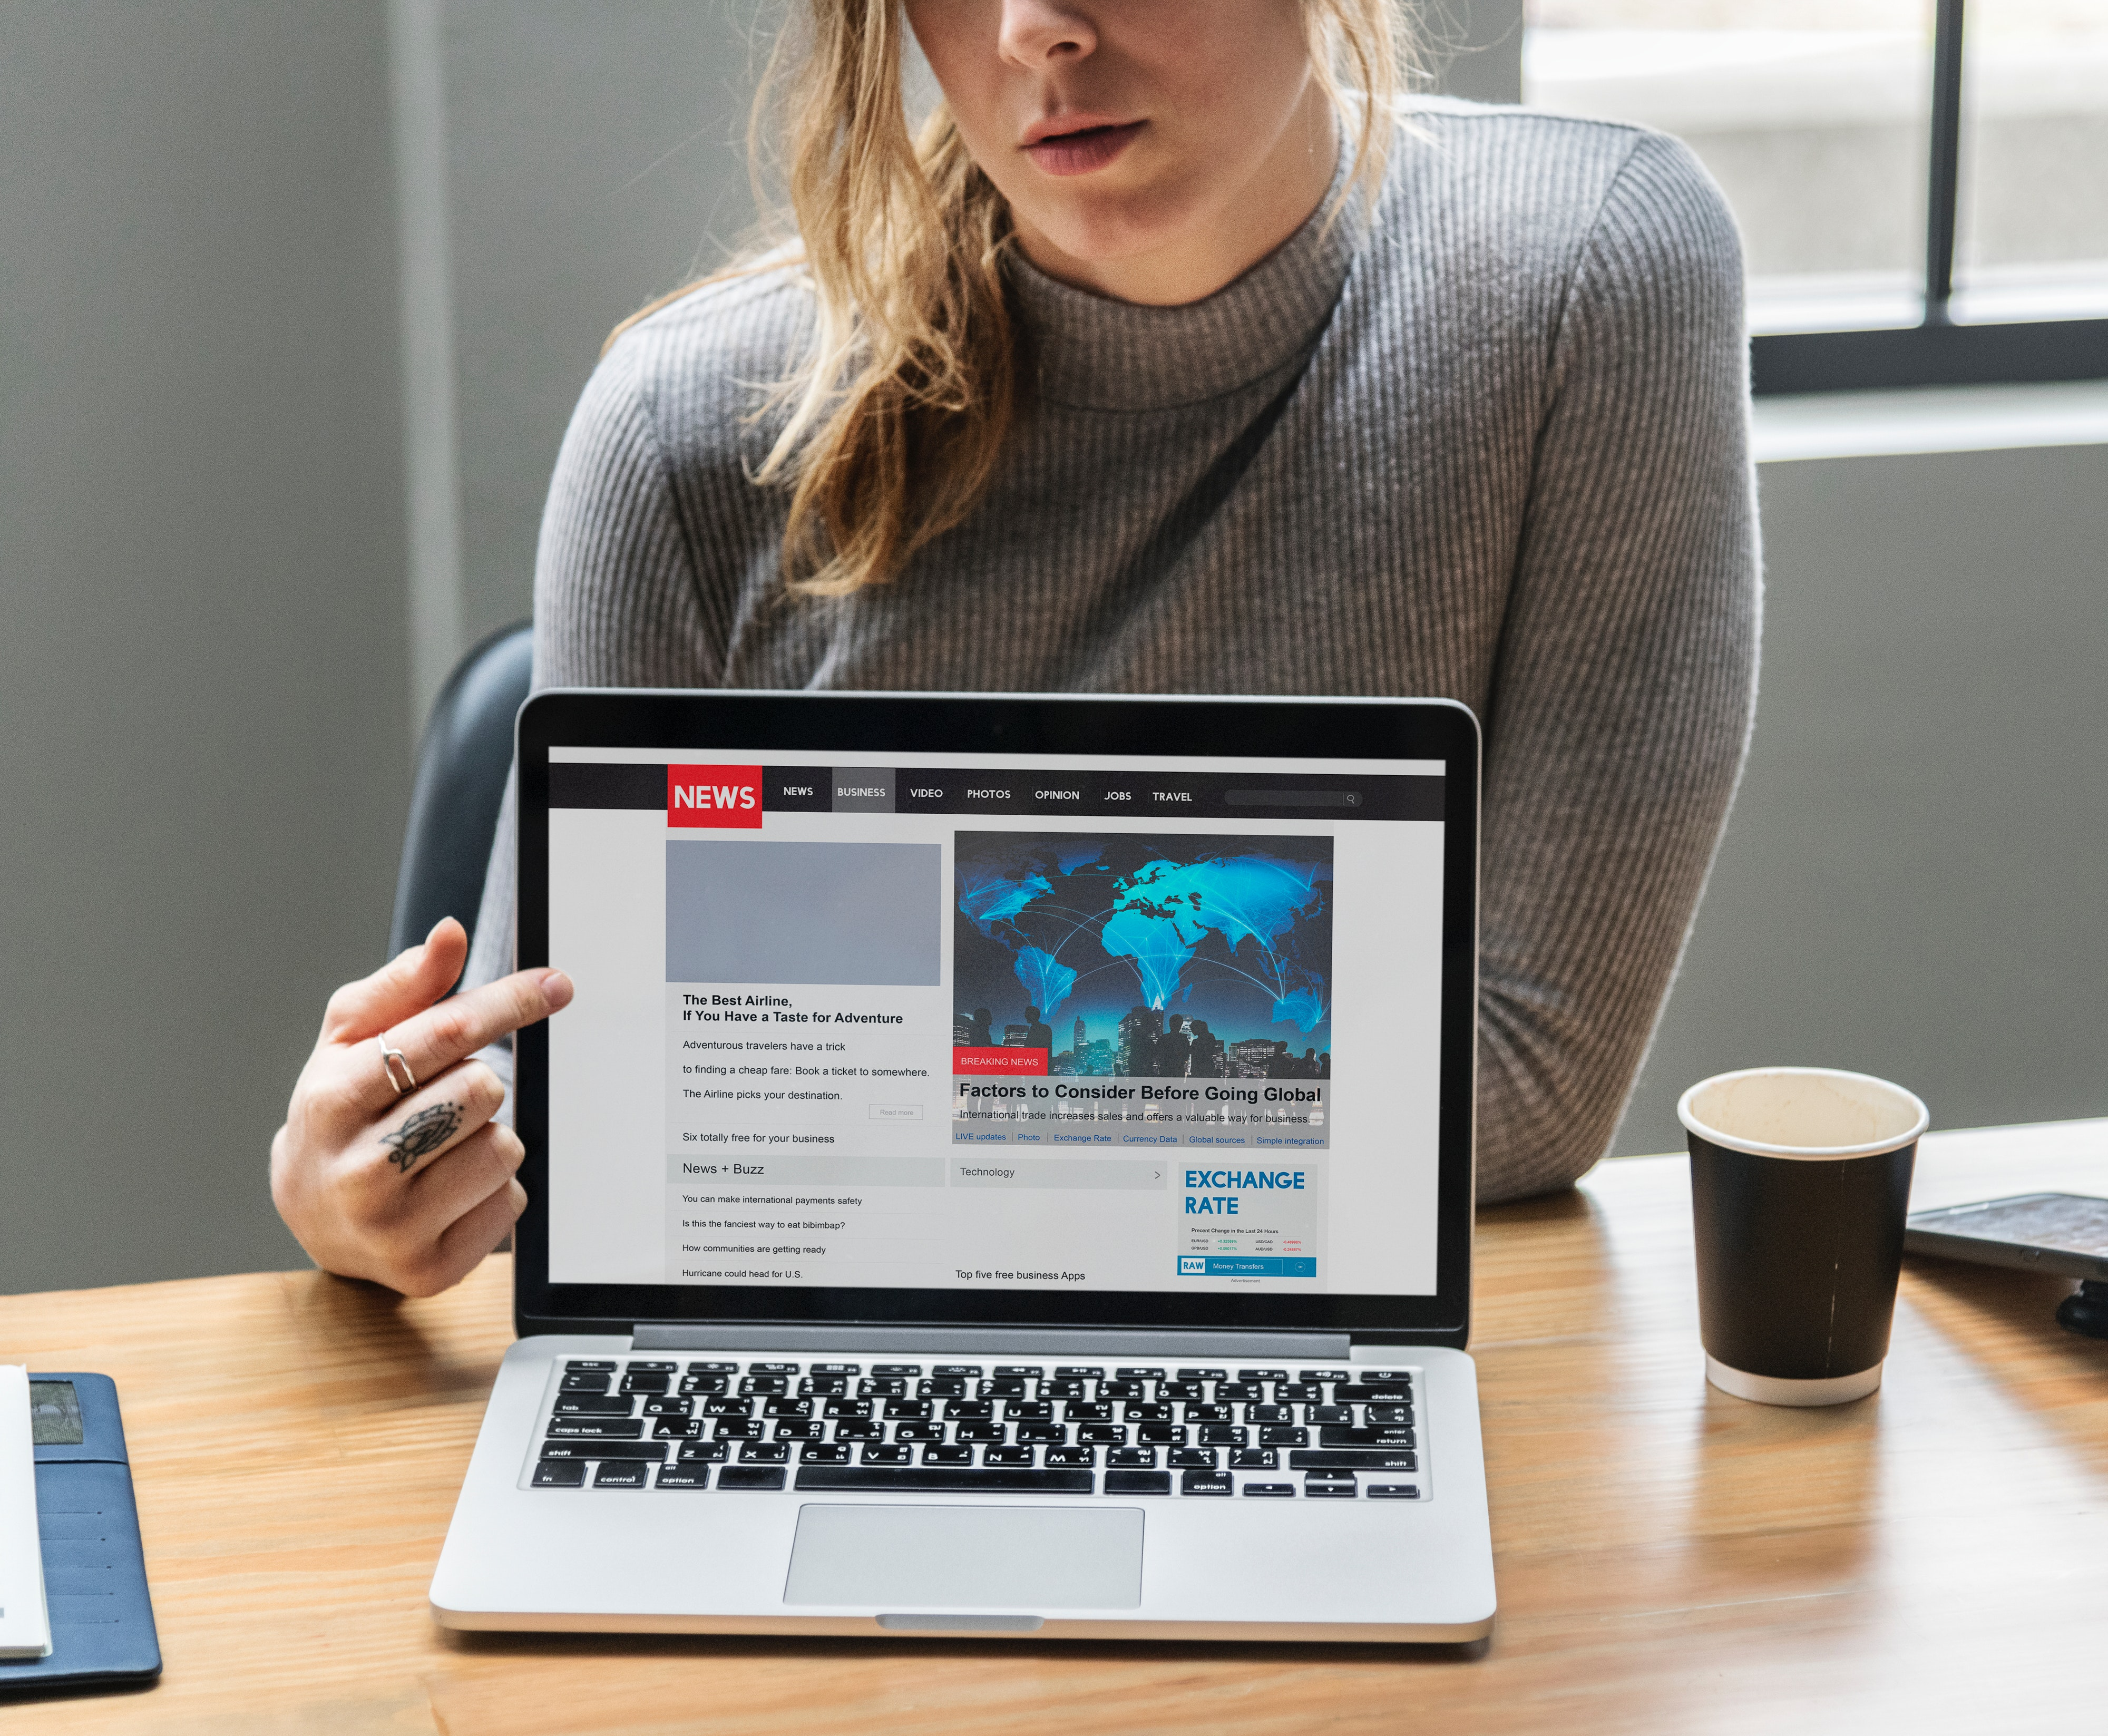 woman points to laptop screen showing news site